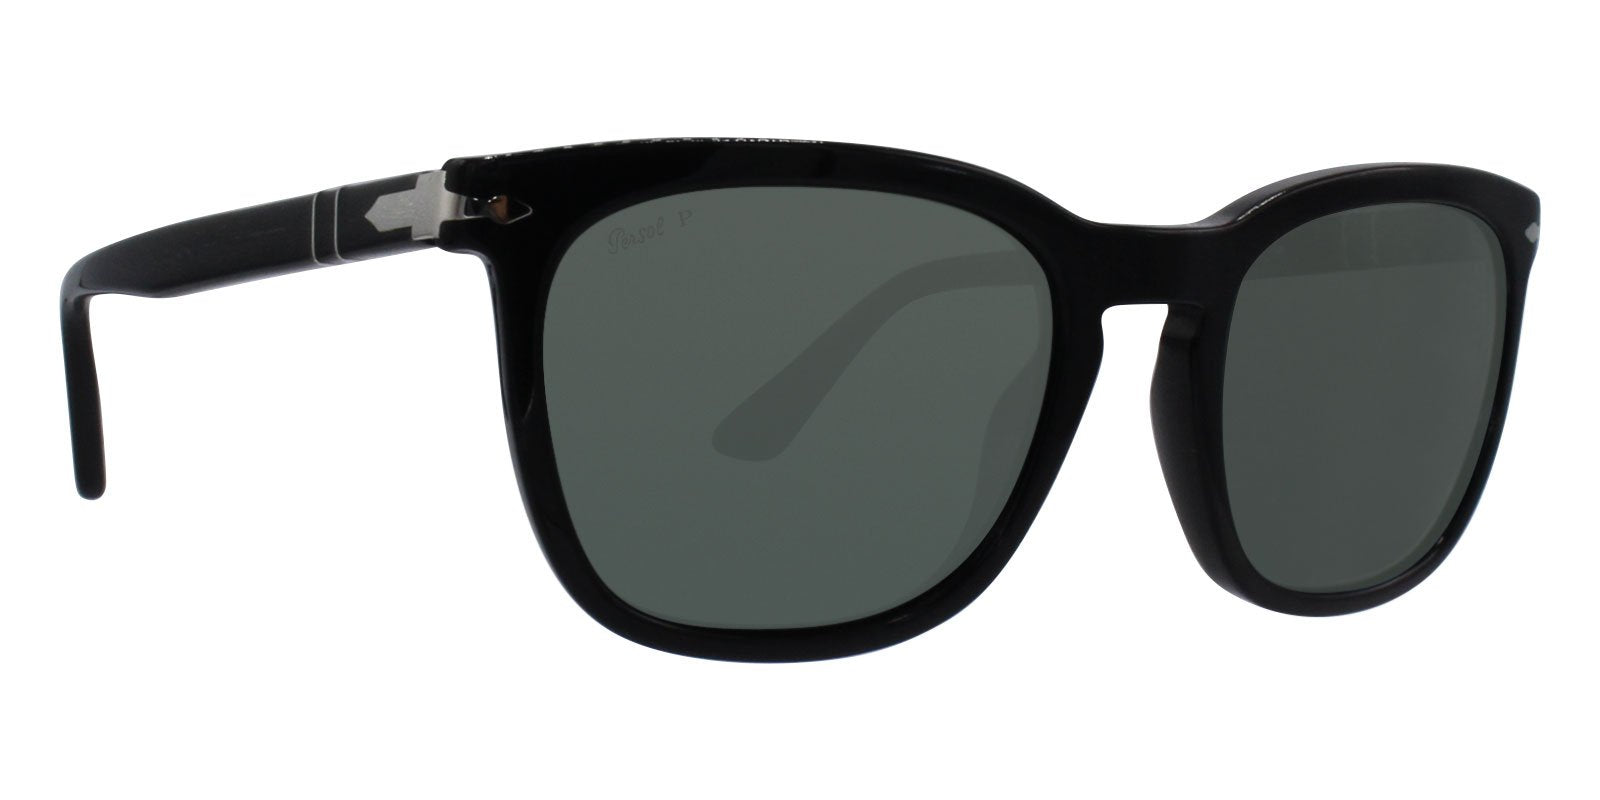 Persol - PO3193S Black Rectangular Unisex Sunglasses - 55mm-Sunglasses-Designer Eyes